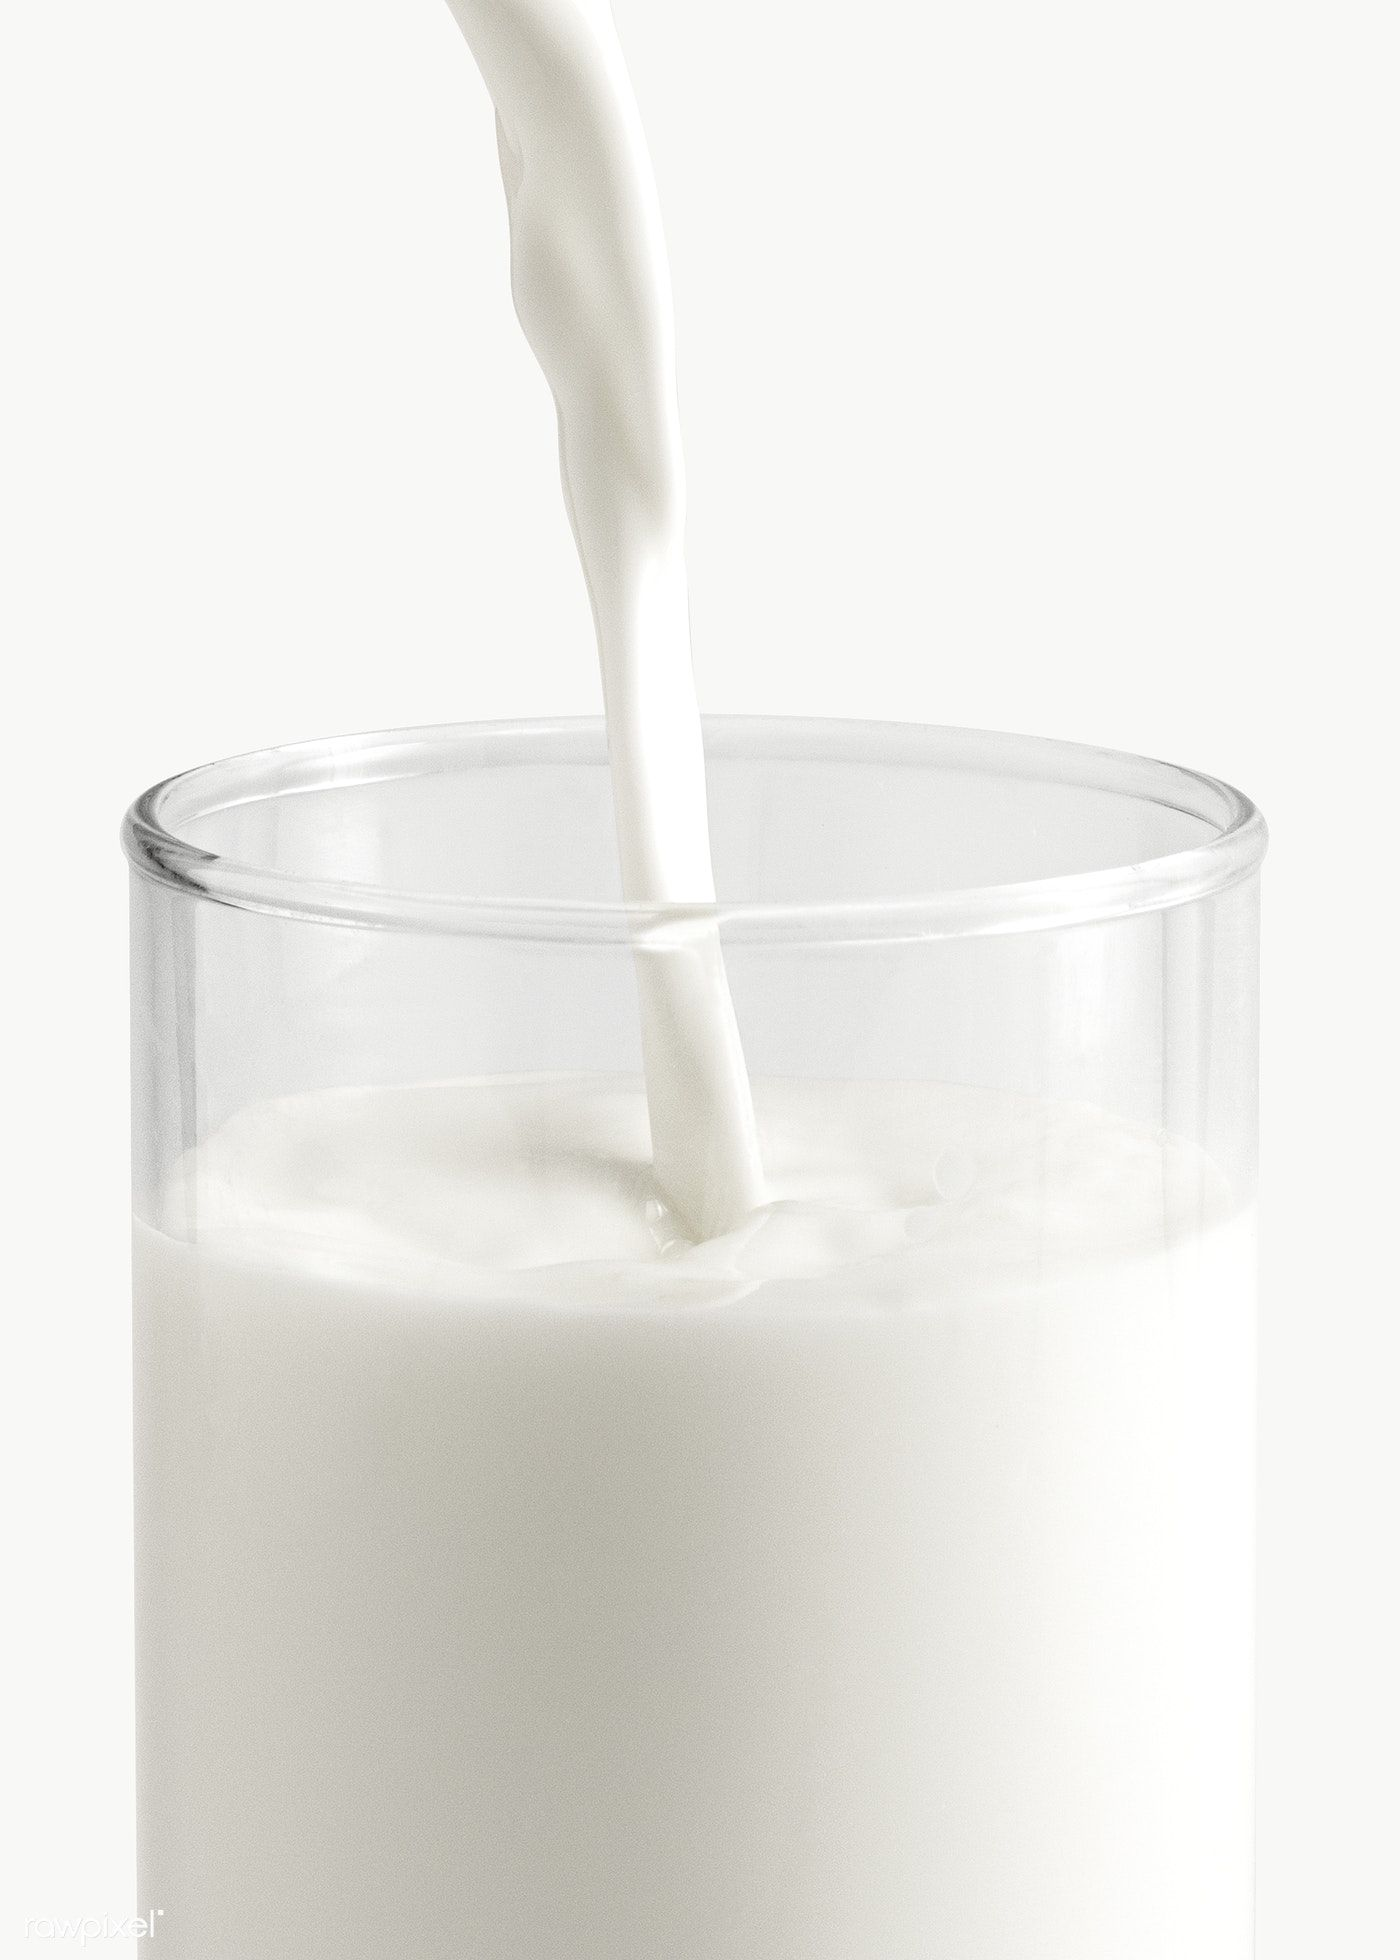 Close Up Of Pouring Milk Into A Glass Design Element Free Image By Rawpixel Com Teddy Rawpixel Fresh Milk Glass Milk